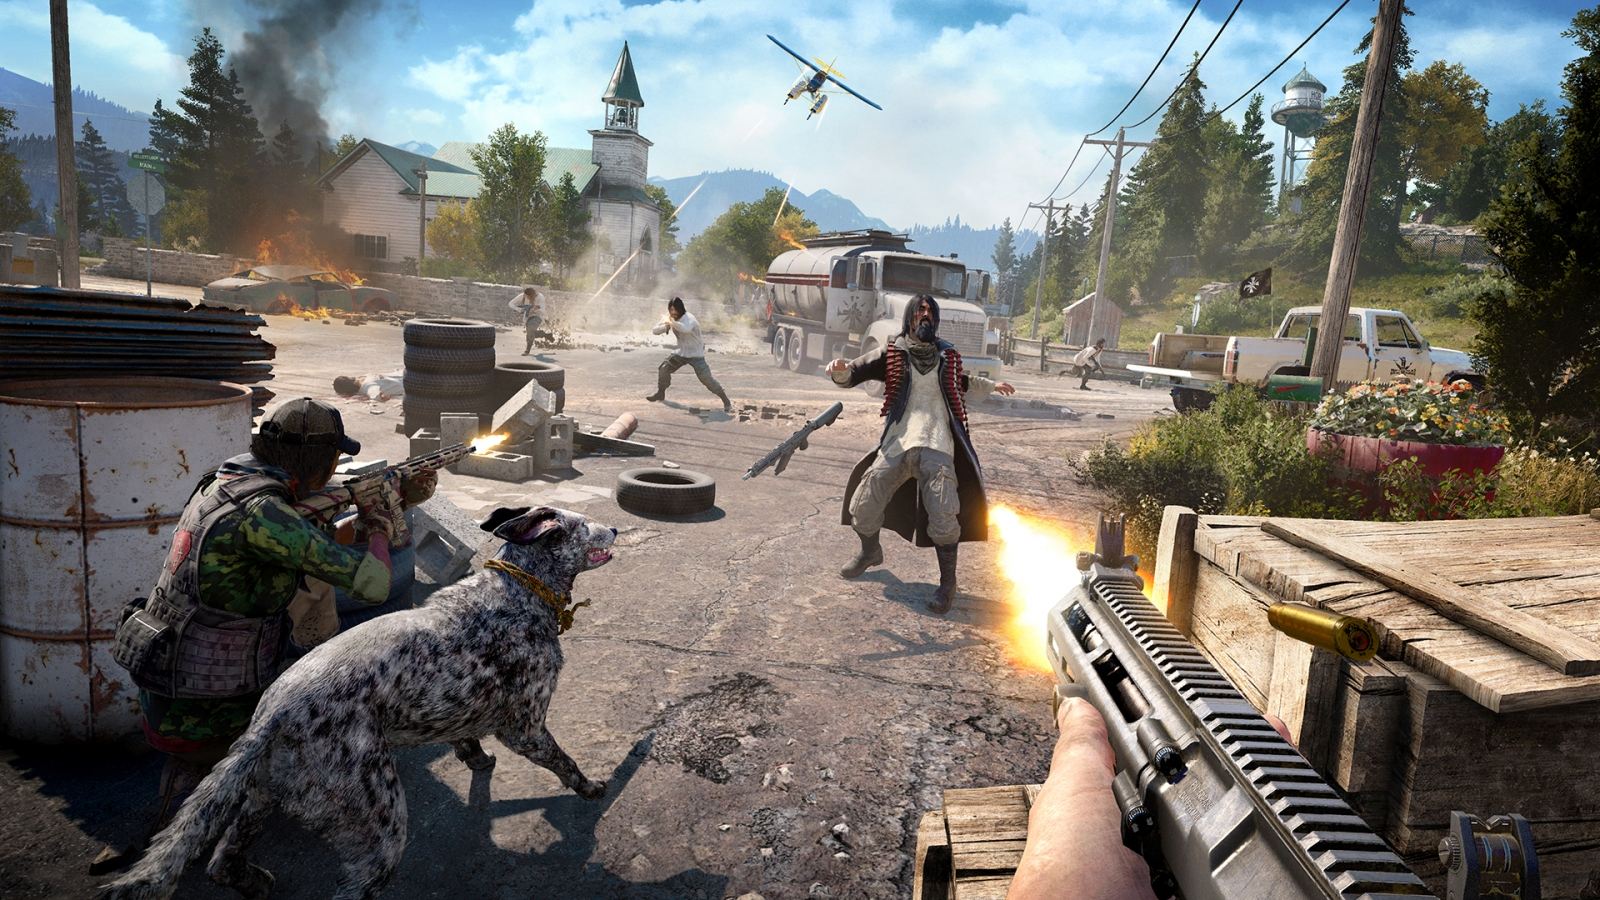 New Far Cry 5 gameplay trailer released